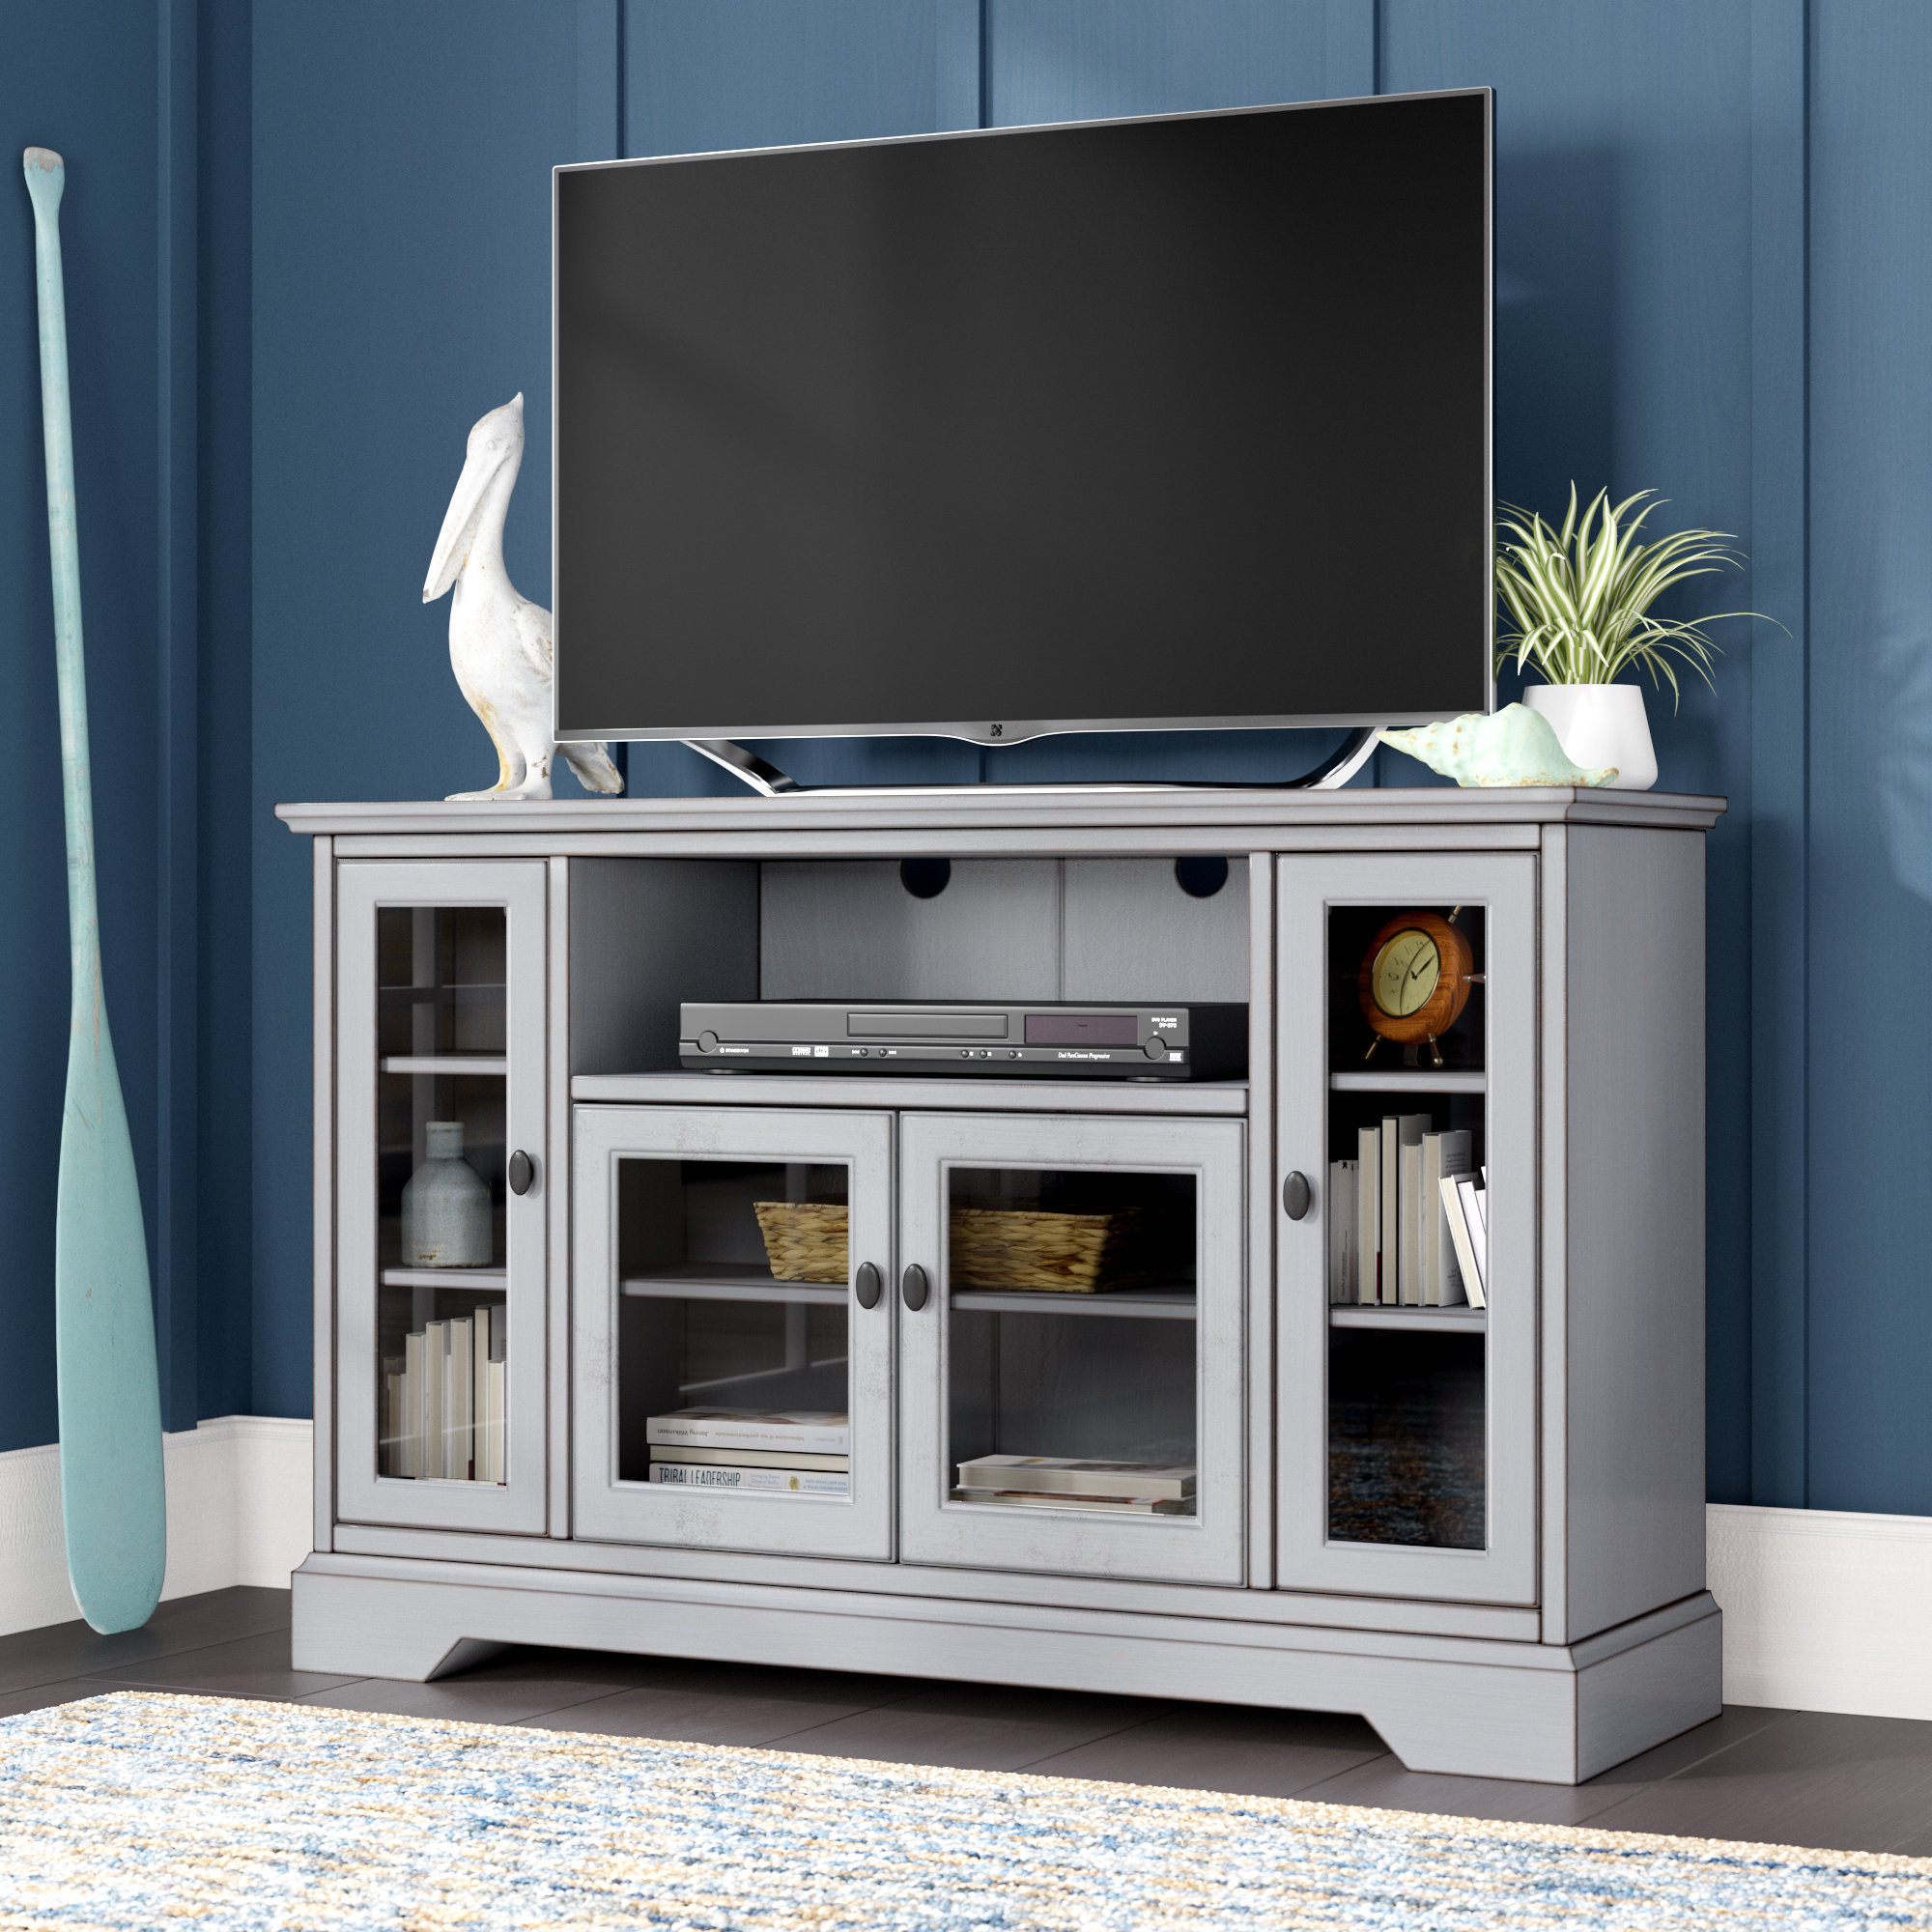 Tv Stands & Entertainment Centers You'll Love | Wayfair inside Sinclair Grey 54 Inch Tv Stands (Image 27 of 30)